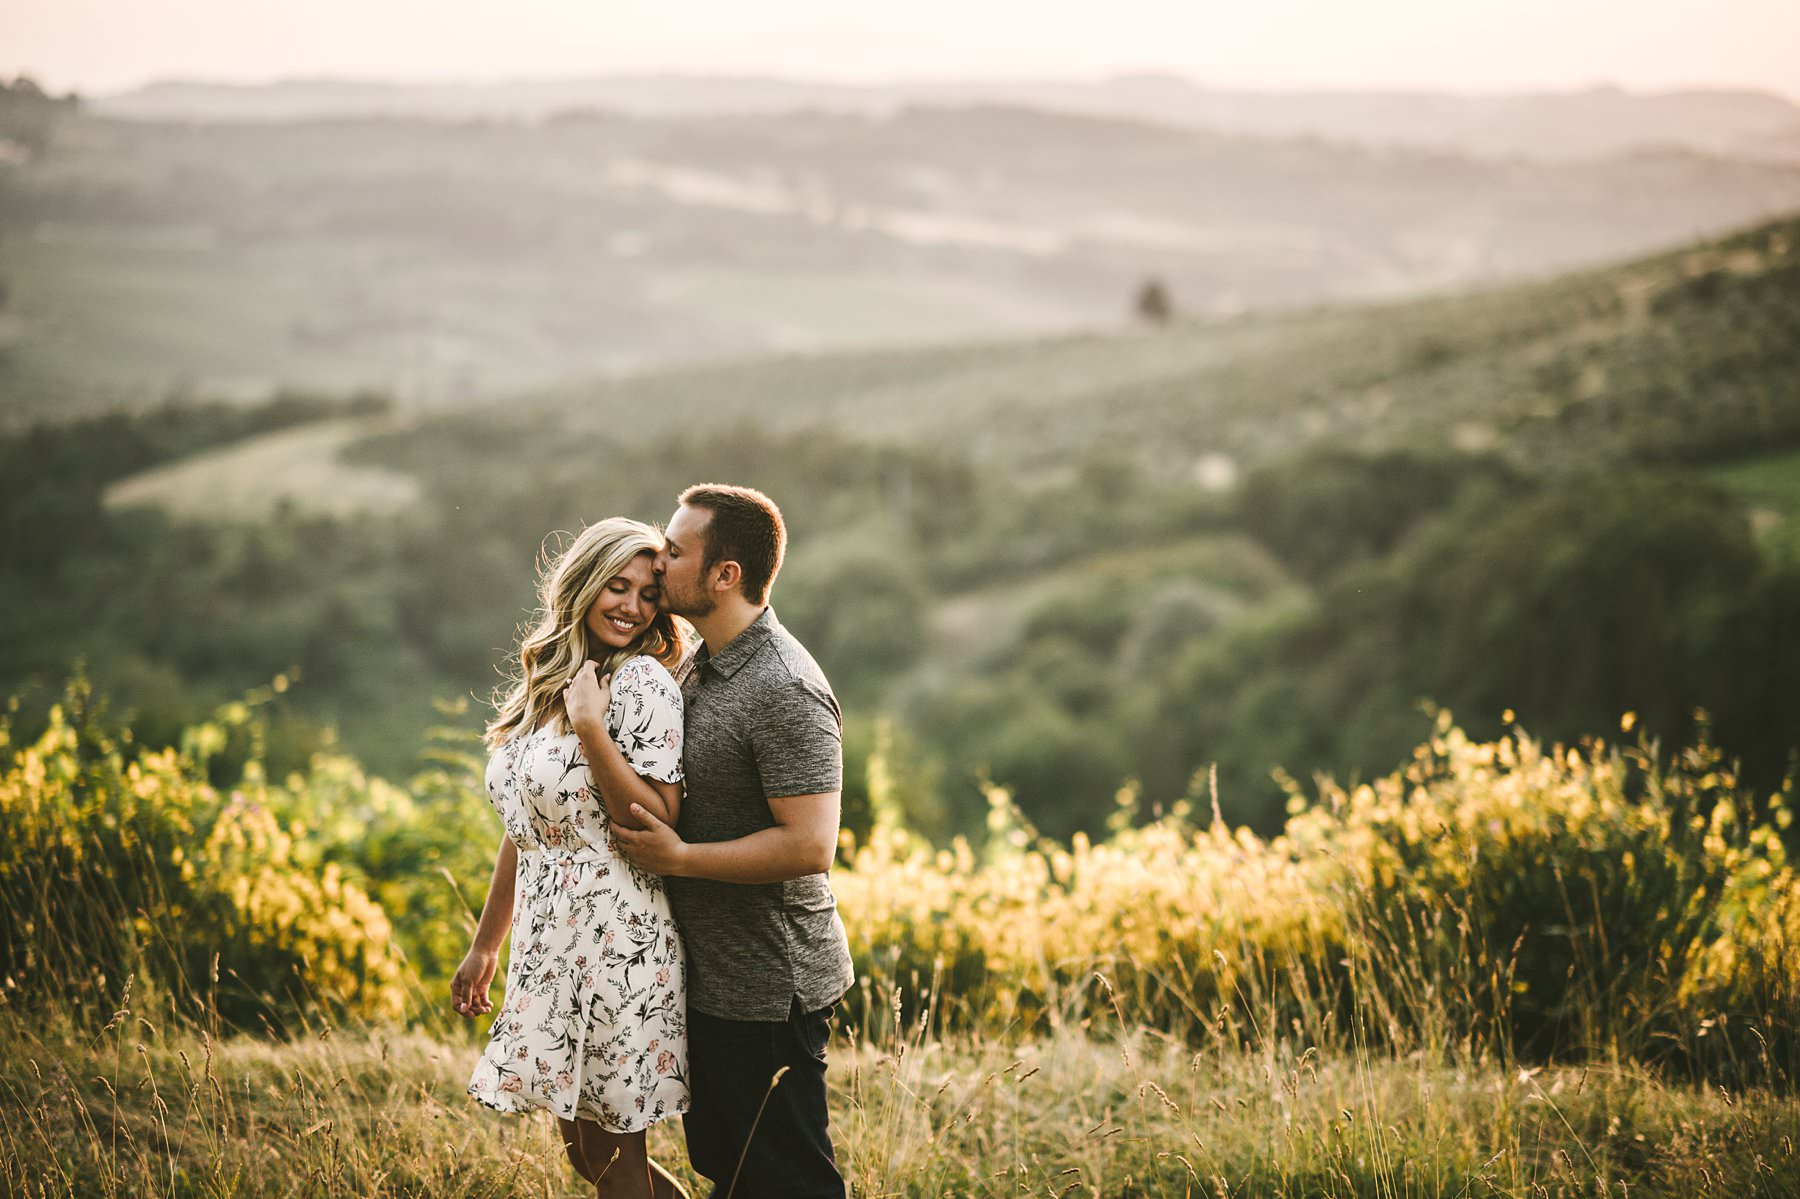 Delicate outdoor engagement photos in Tuscany: a holiday to remember. Discover the magic of Chianti. Outdoor engagement photos in the charming Florence and breathtaking Chianti are the perfect way to celebrate a special and meaningful holiday. The countryside is a sequence of green and gold rolling hills, covered in vineyards and olive groves. A landscape that feels like a fairytale will embrace you while you express your love to each other. Just like Andrea and Aaron who danced, laughed, kissed, hugged and enjoyed every minute of the shooting in such a magical location, caressed by the warm sunset light